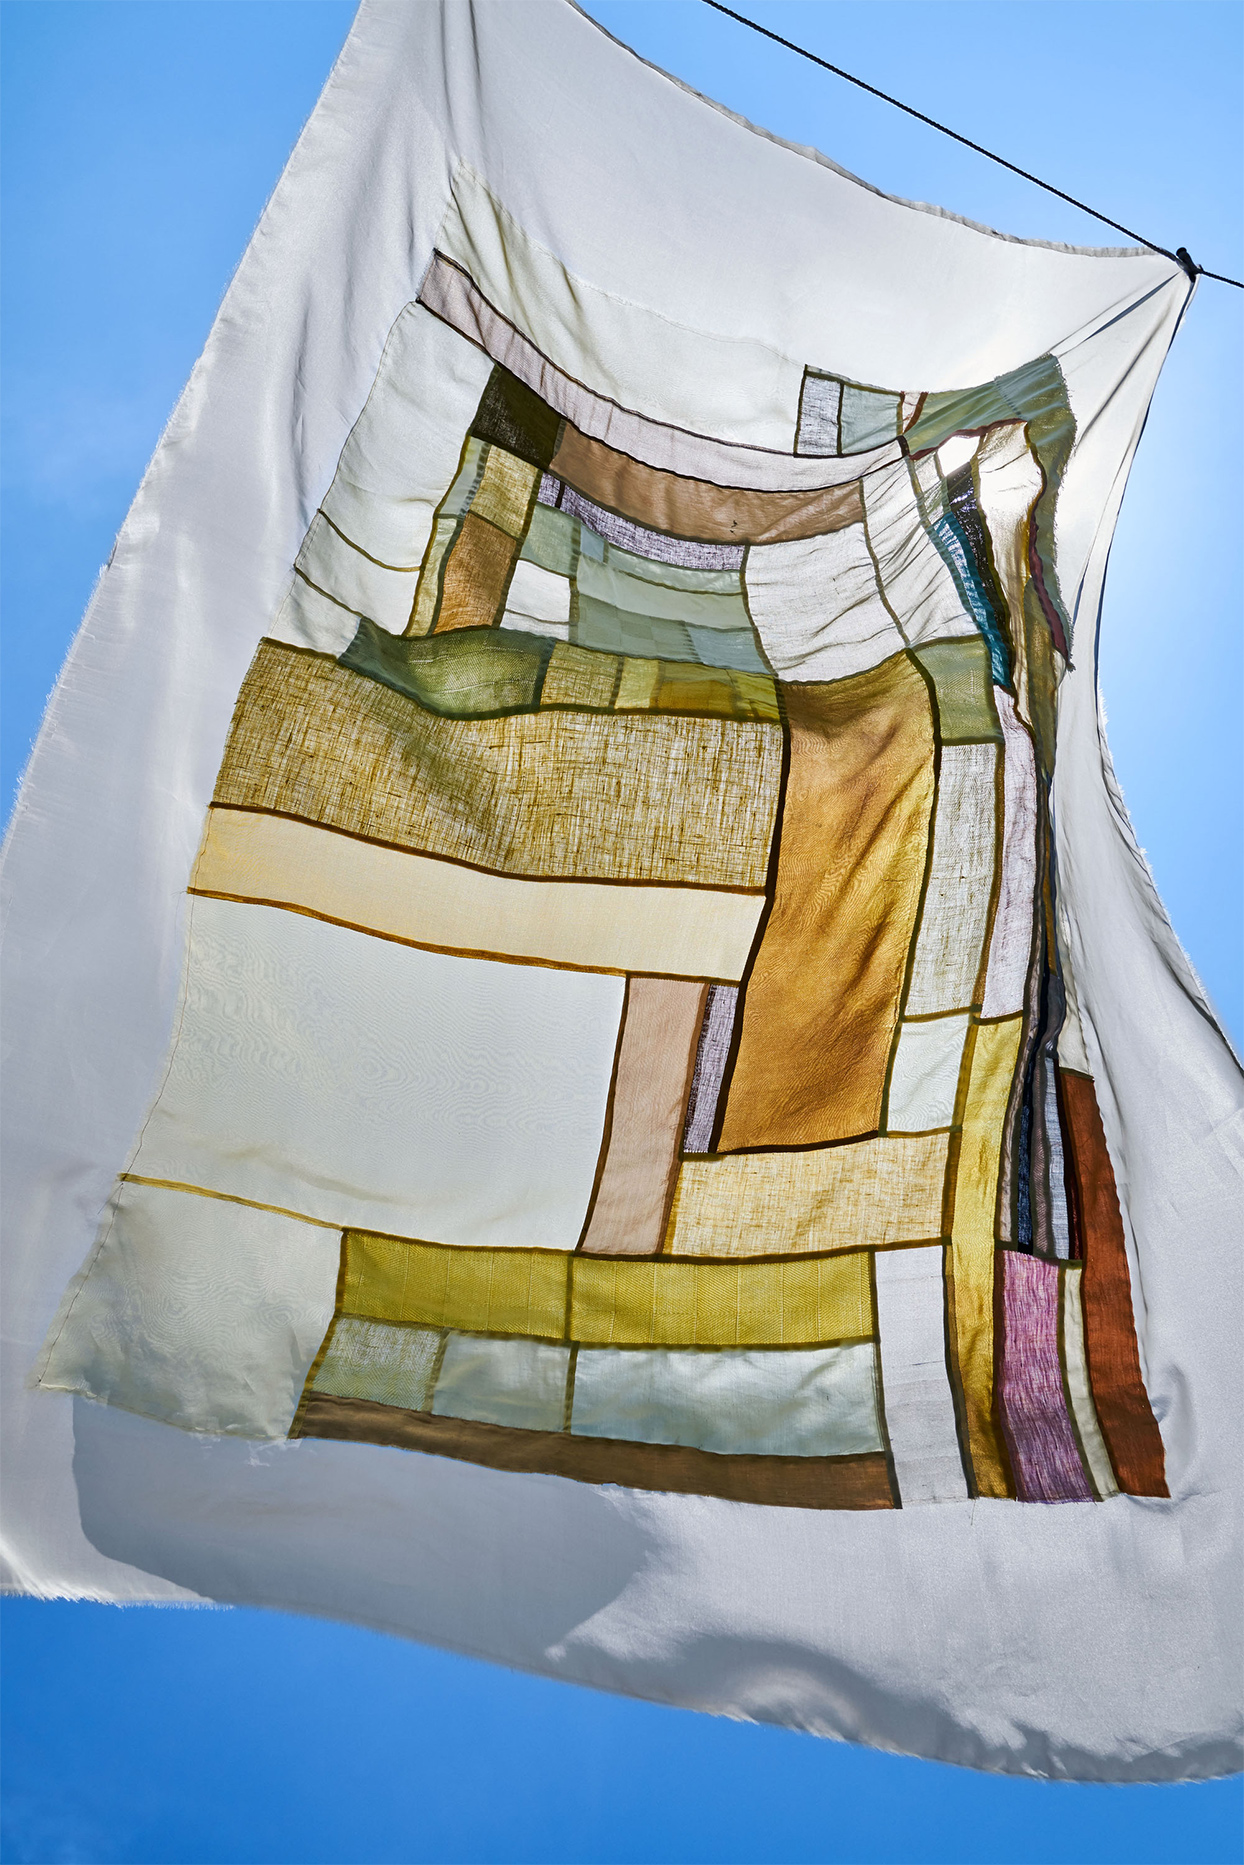 quilted naturally dyed textile hanging outdoors